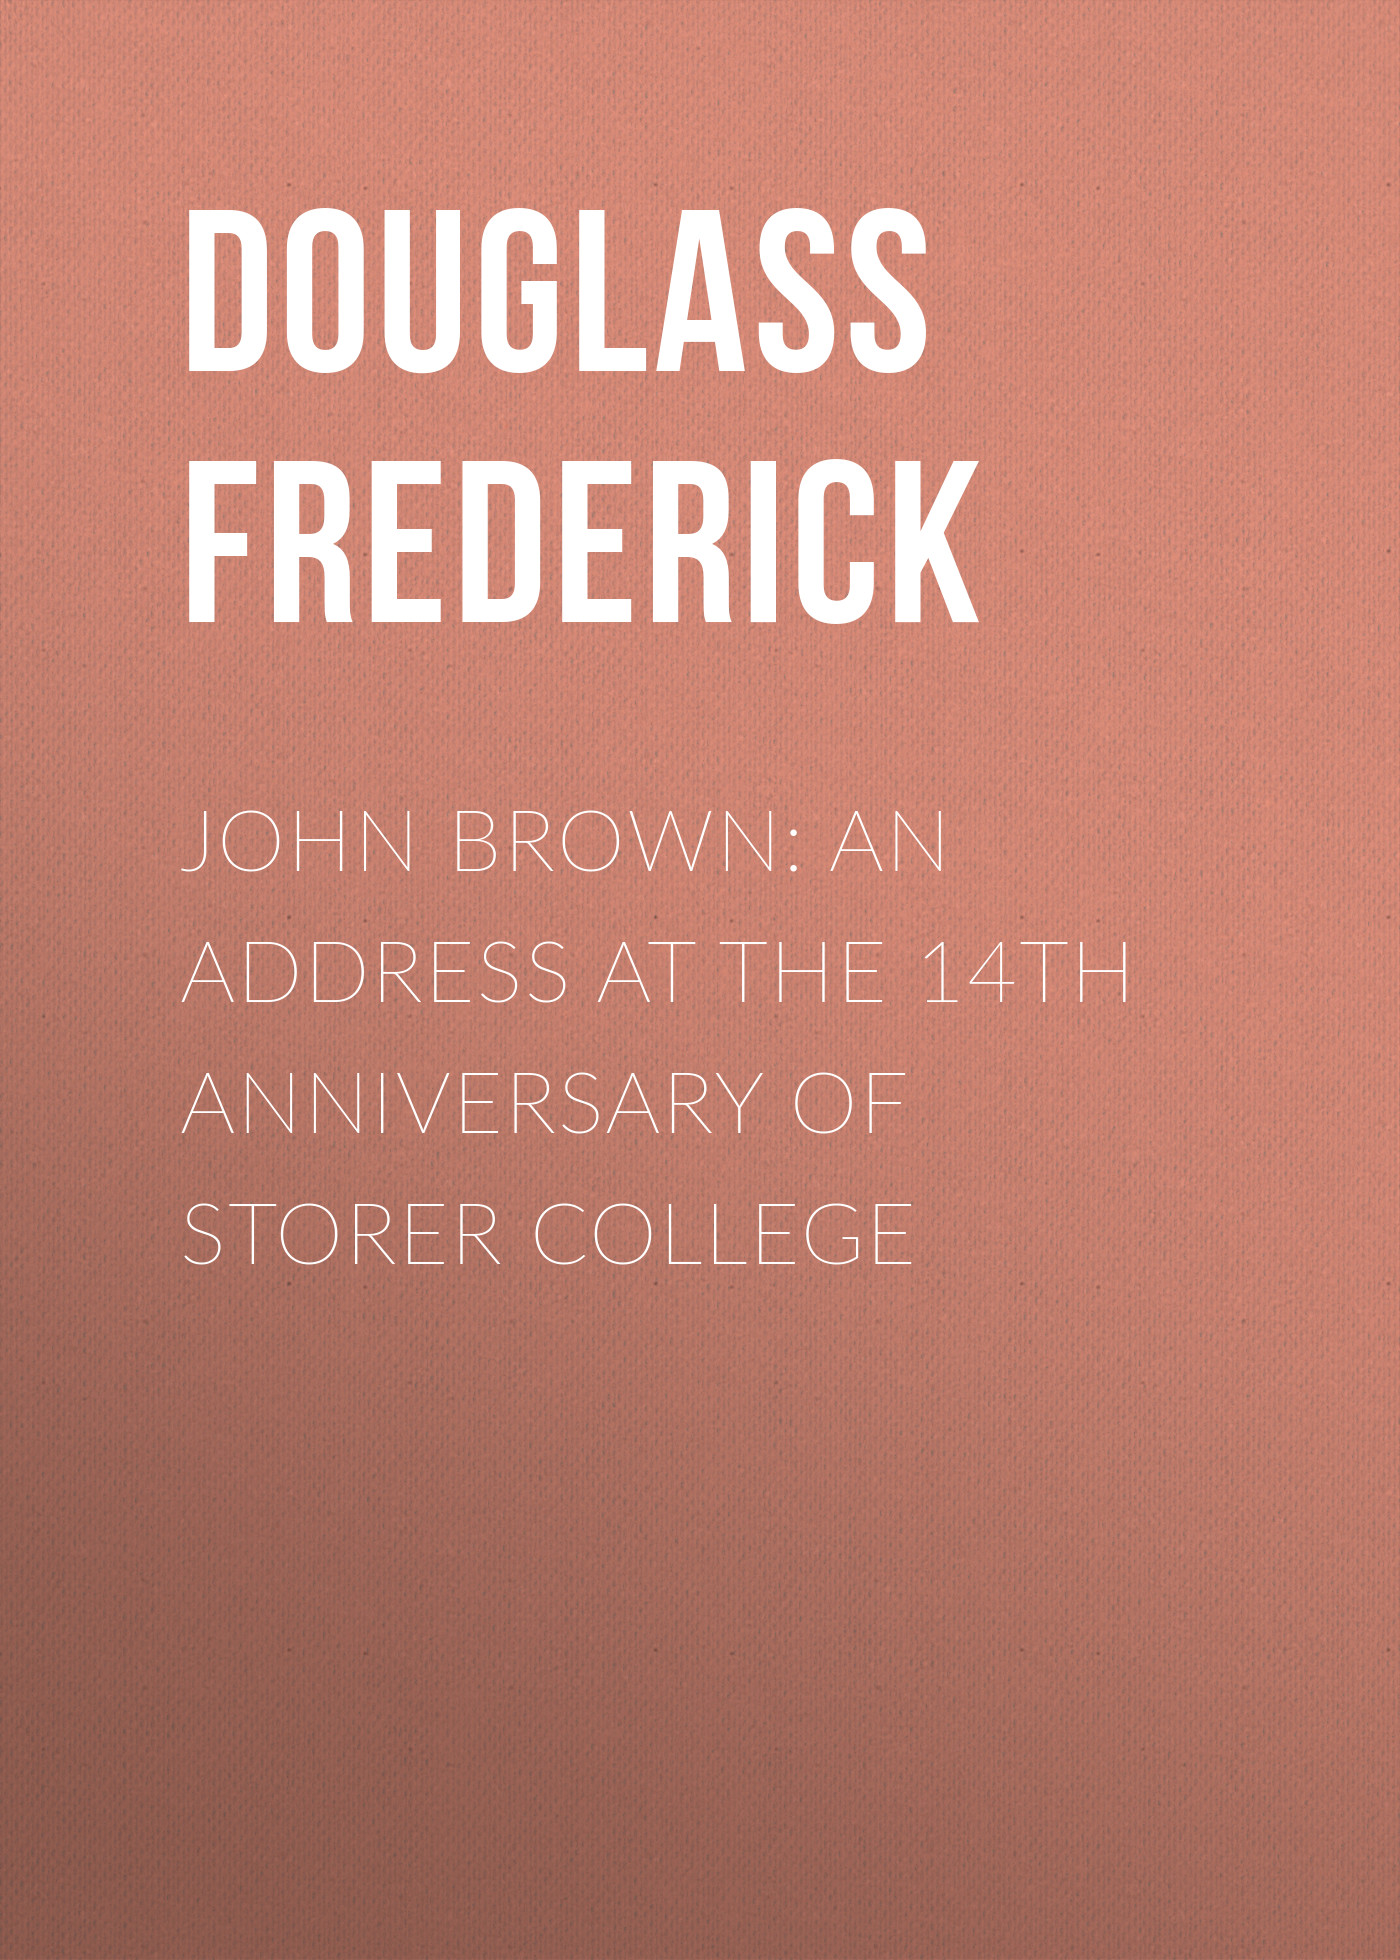 Douglass Frederick John Brown: An Address at the 14th Anniversary of Storer College f douglass oration by frederick douglass